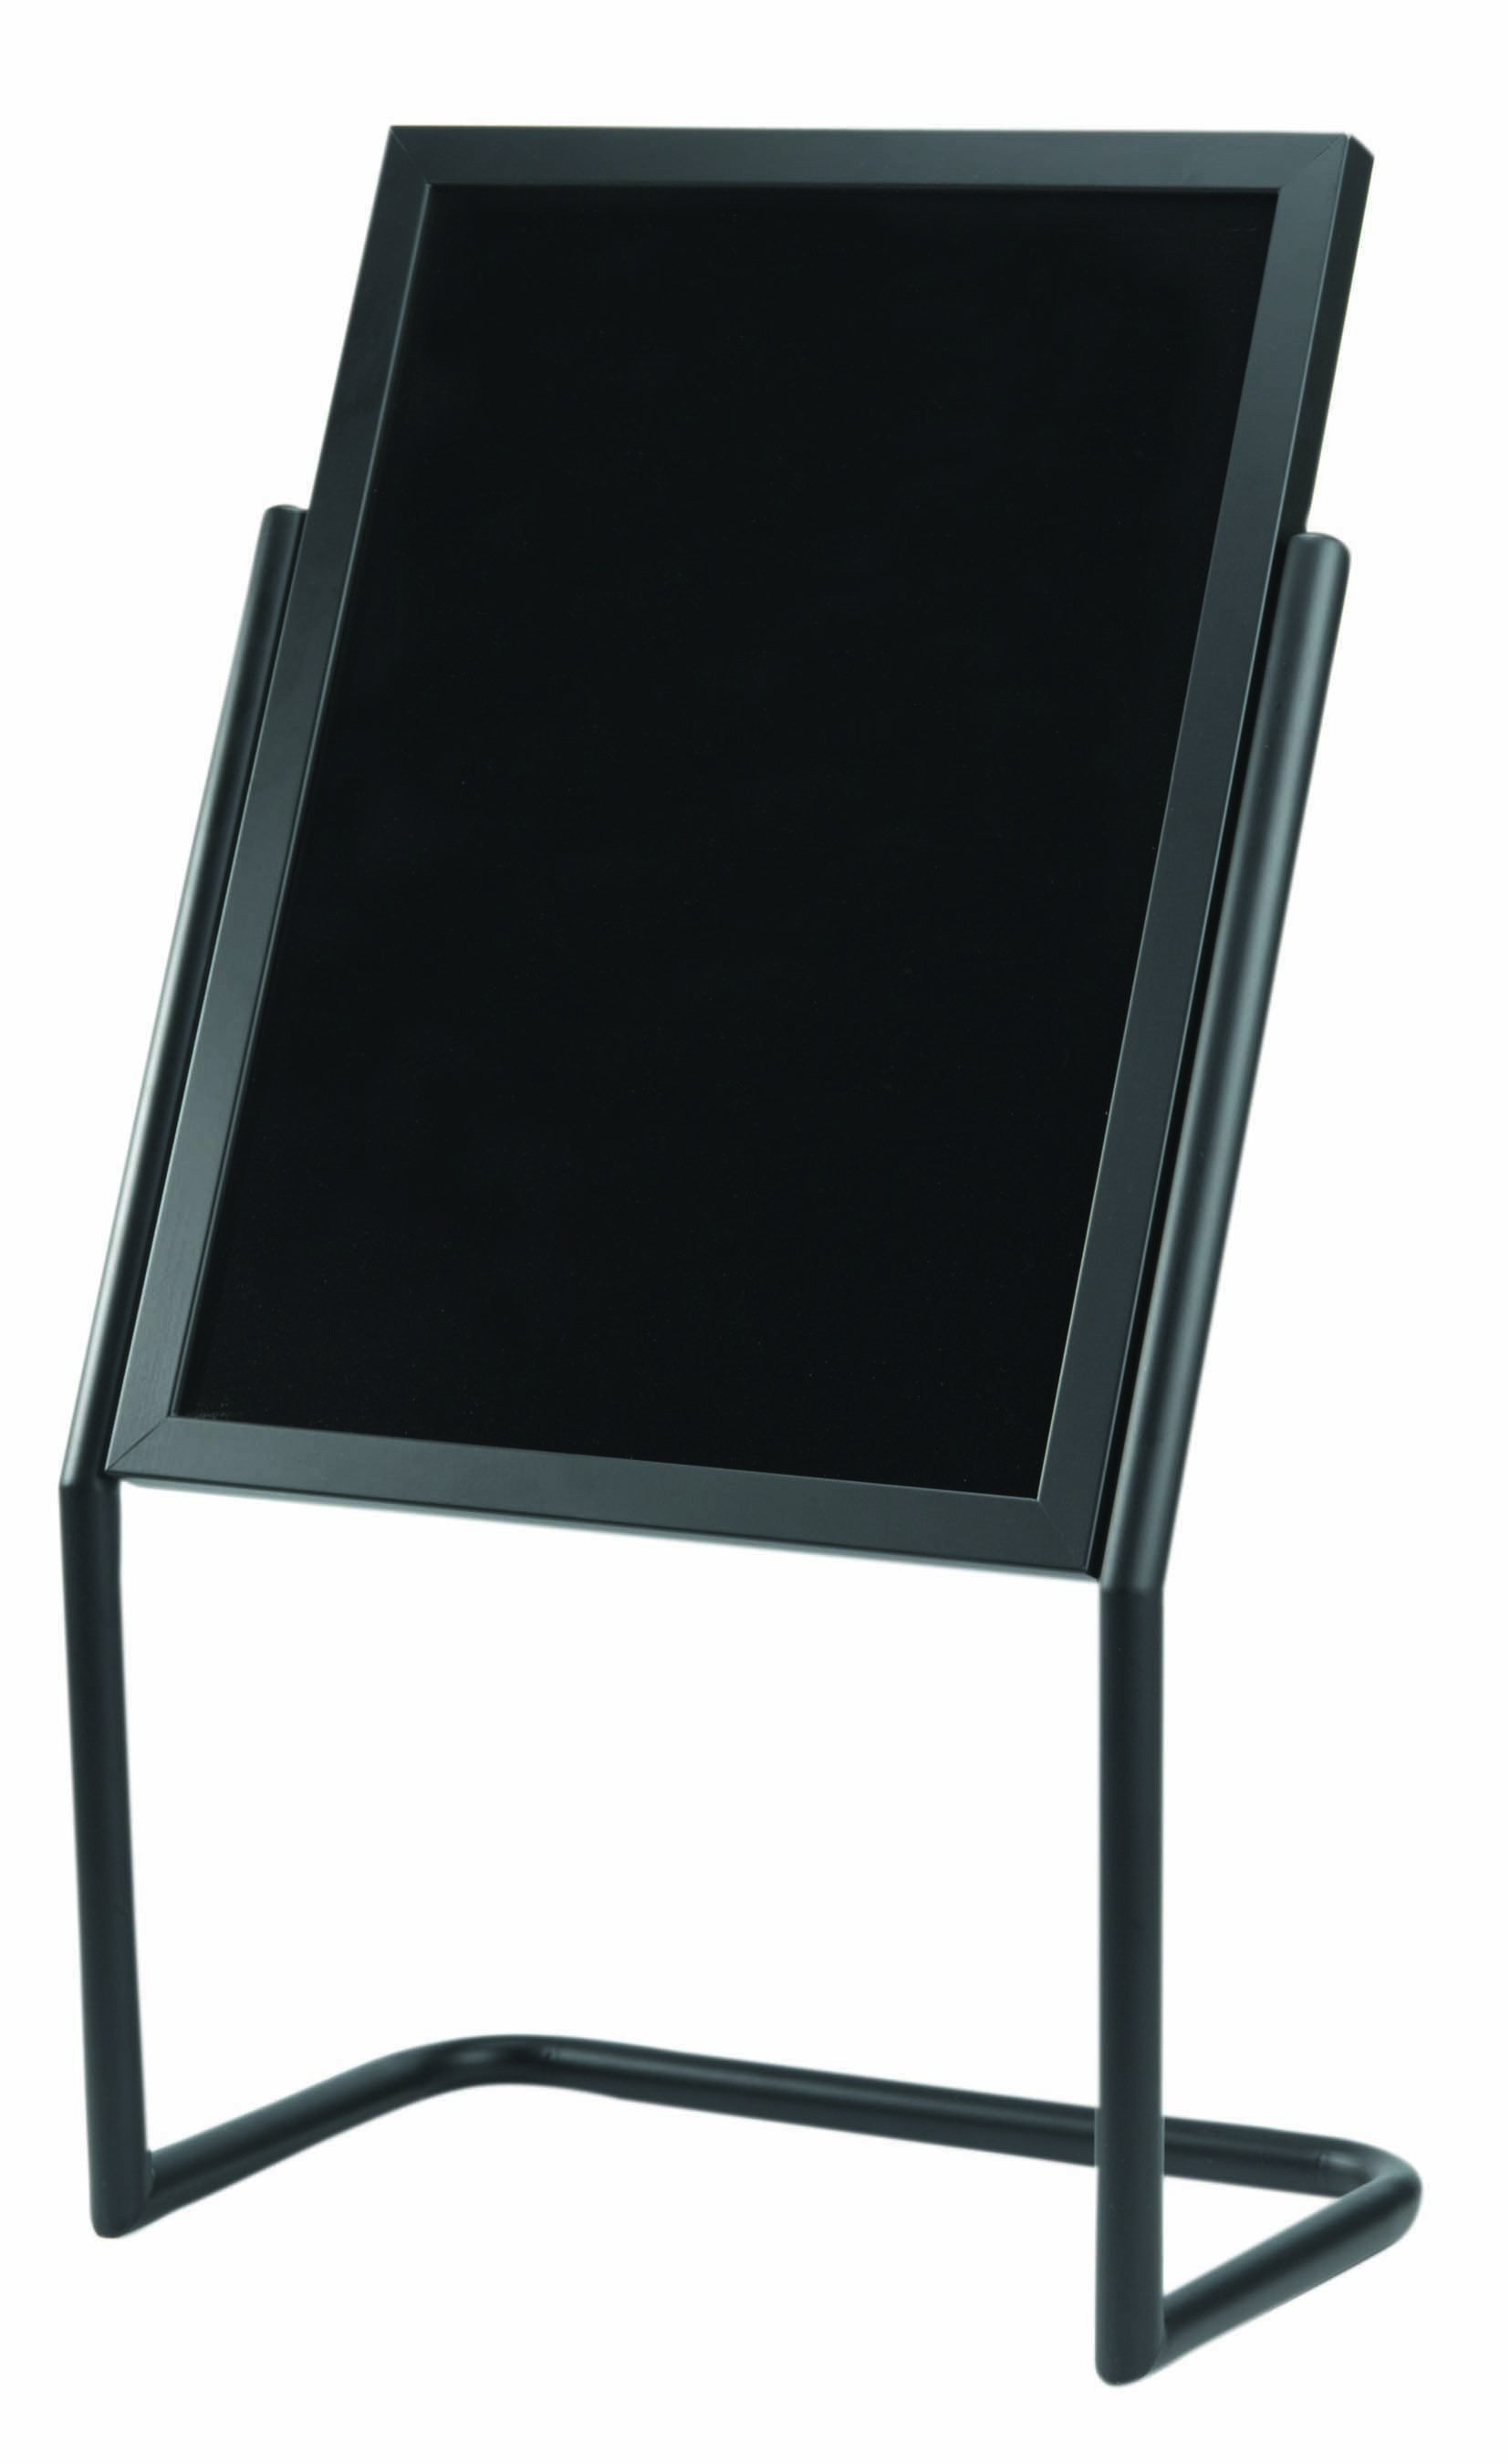 Aarco Products P-17BK Double Pedestal Free Standing Display/Broadcaster Black Frame with Markerboard